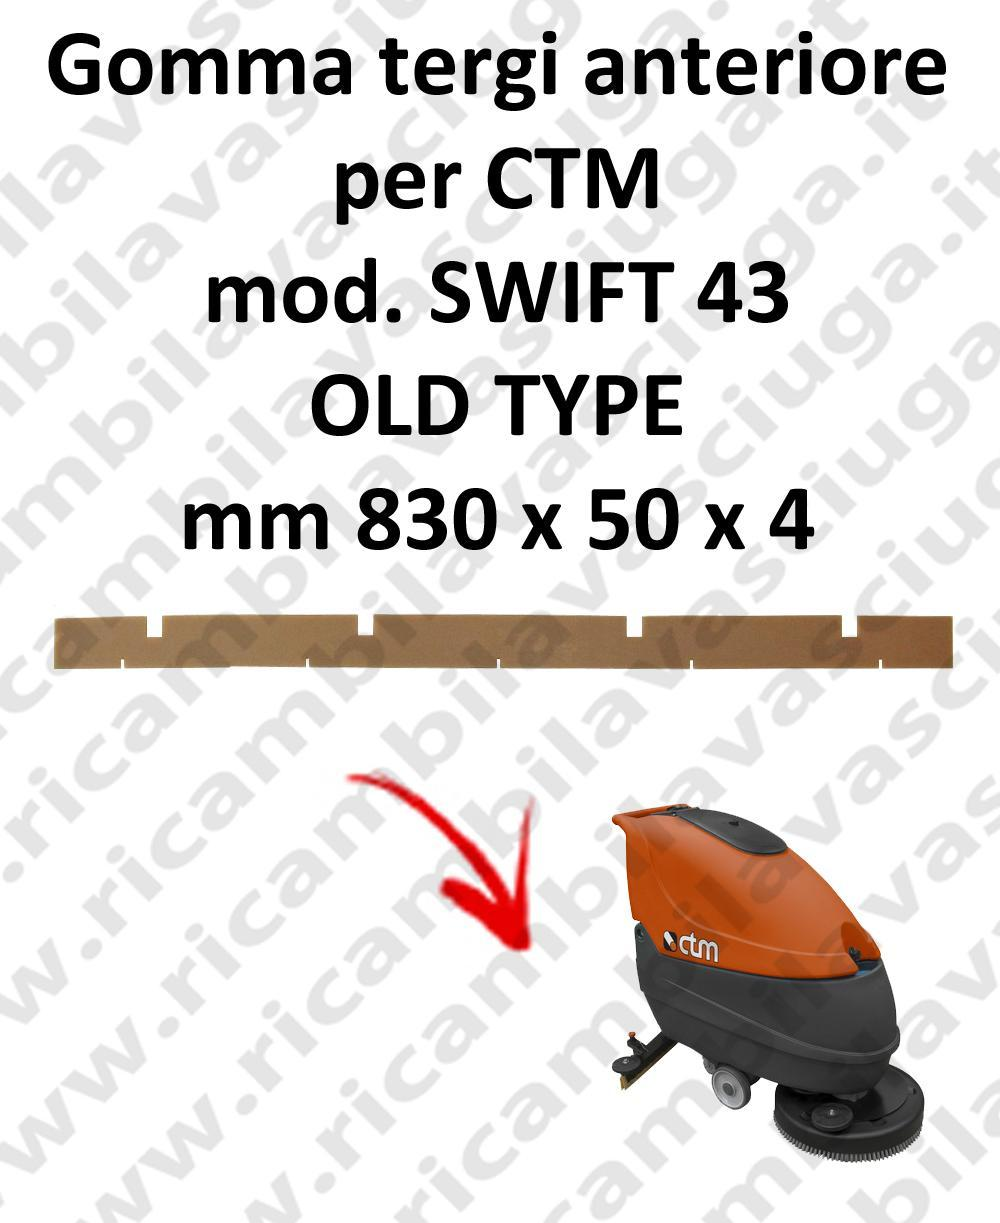 SWIFT 43 OLD TYPE goma de secado delantera para fregadora CTM